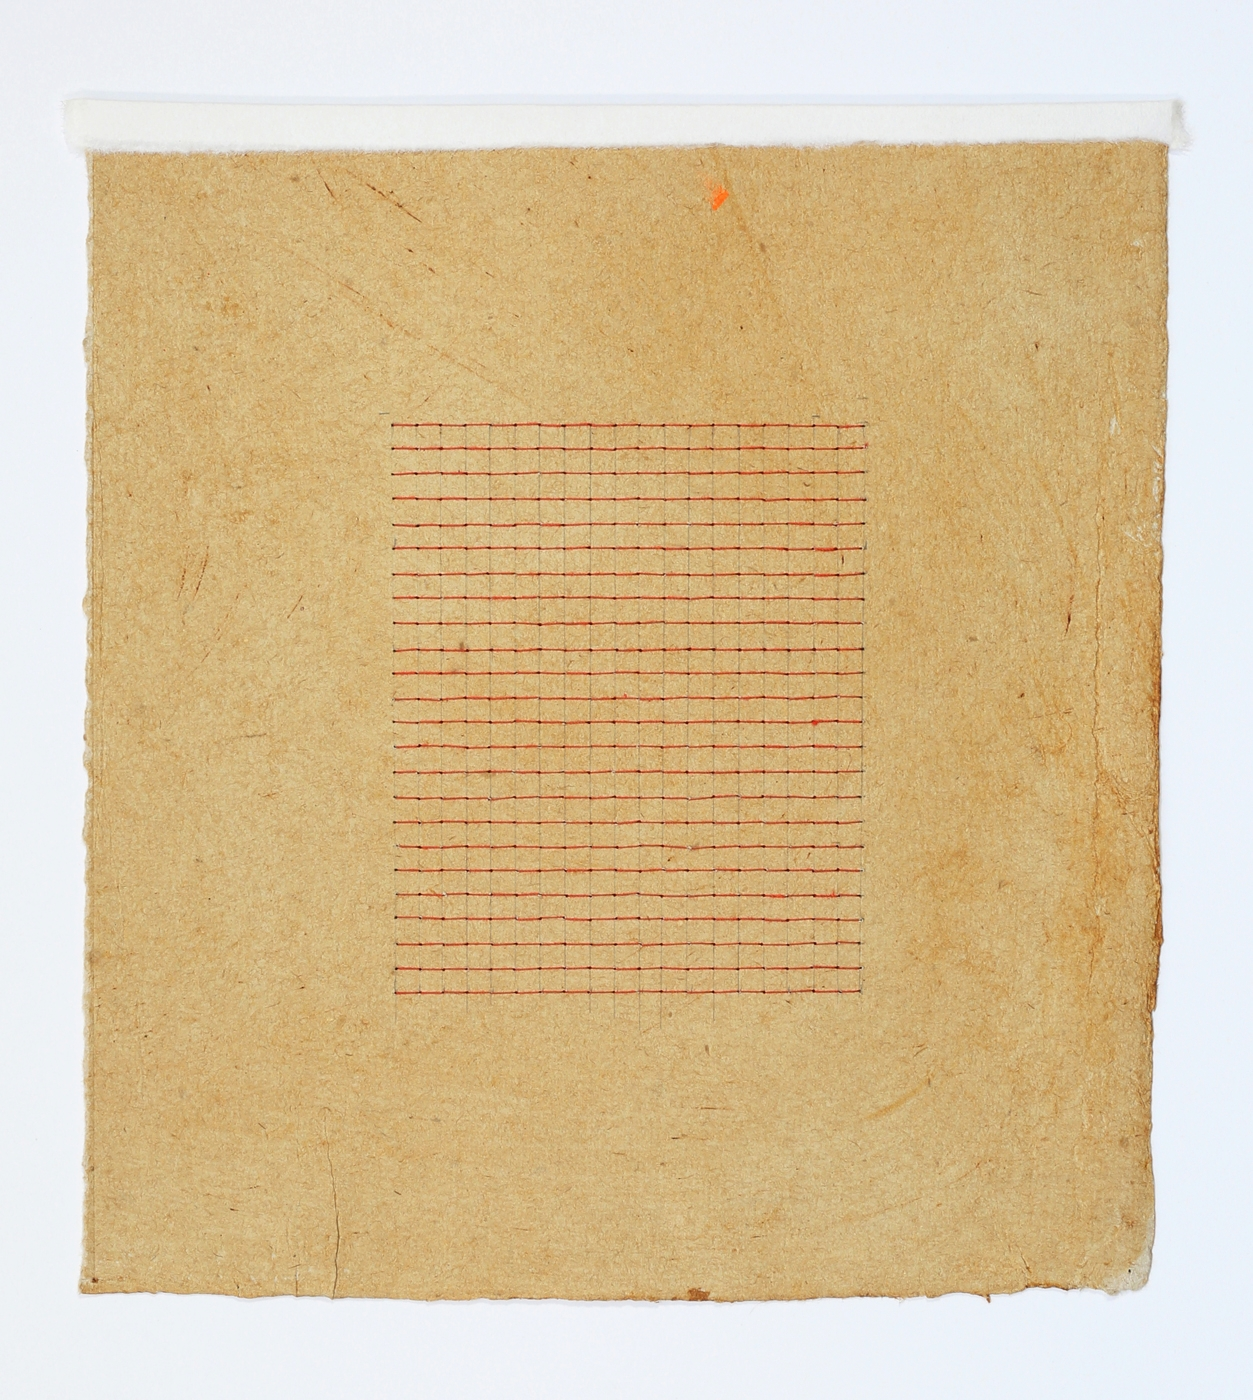 """Red Stitches. 2015. Paper, Glue and Thread. 12"""" x 11.5"""""""